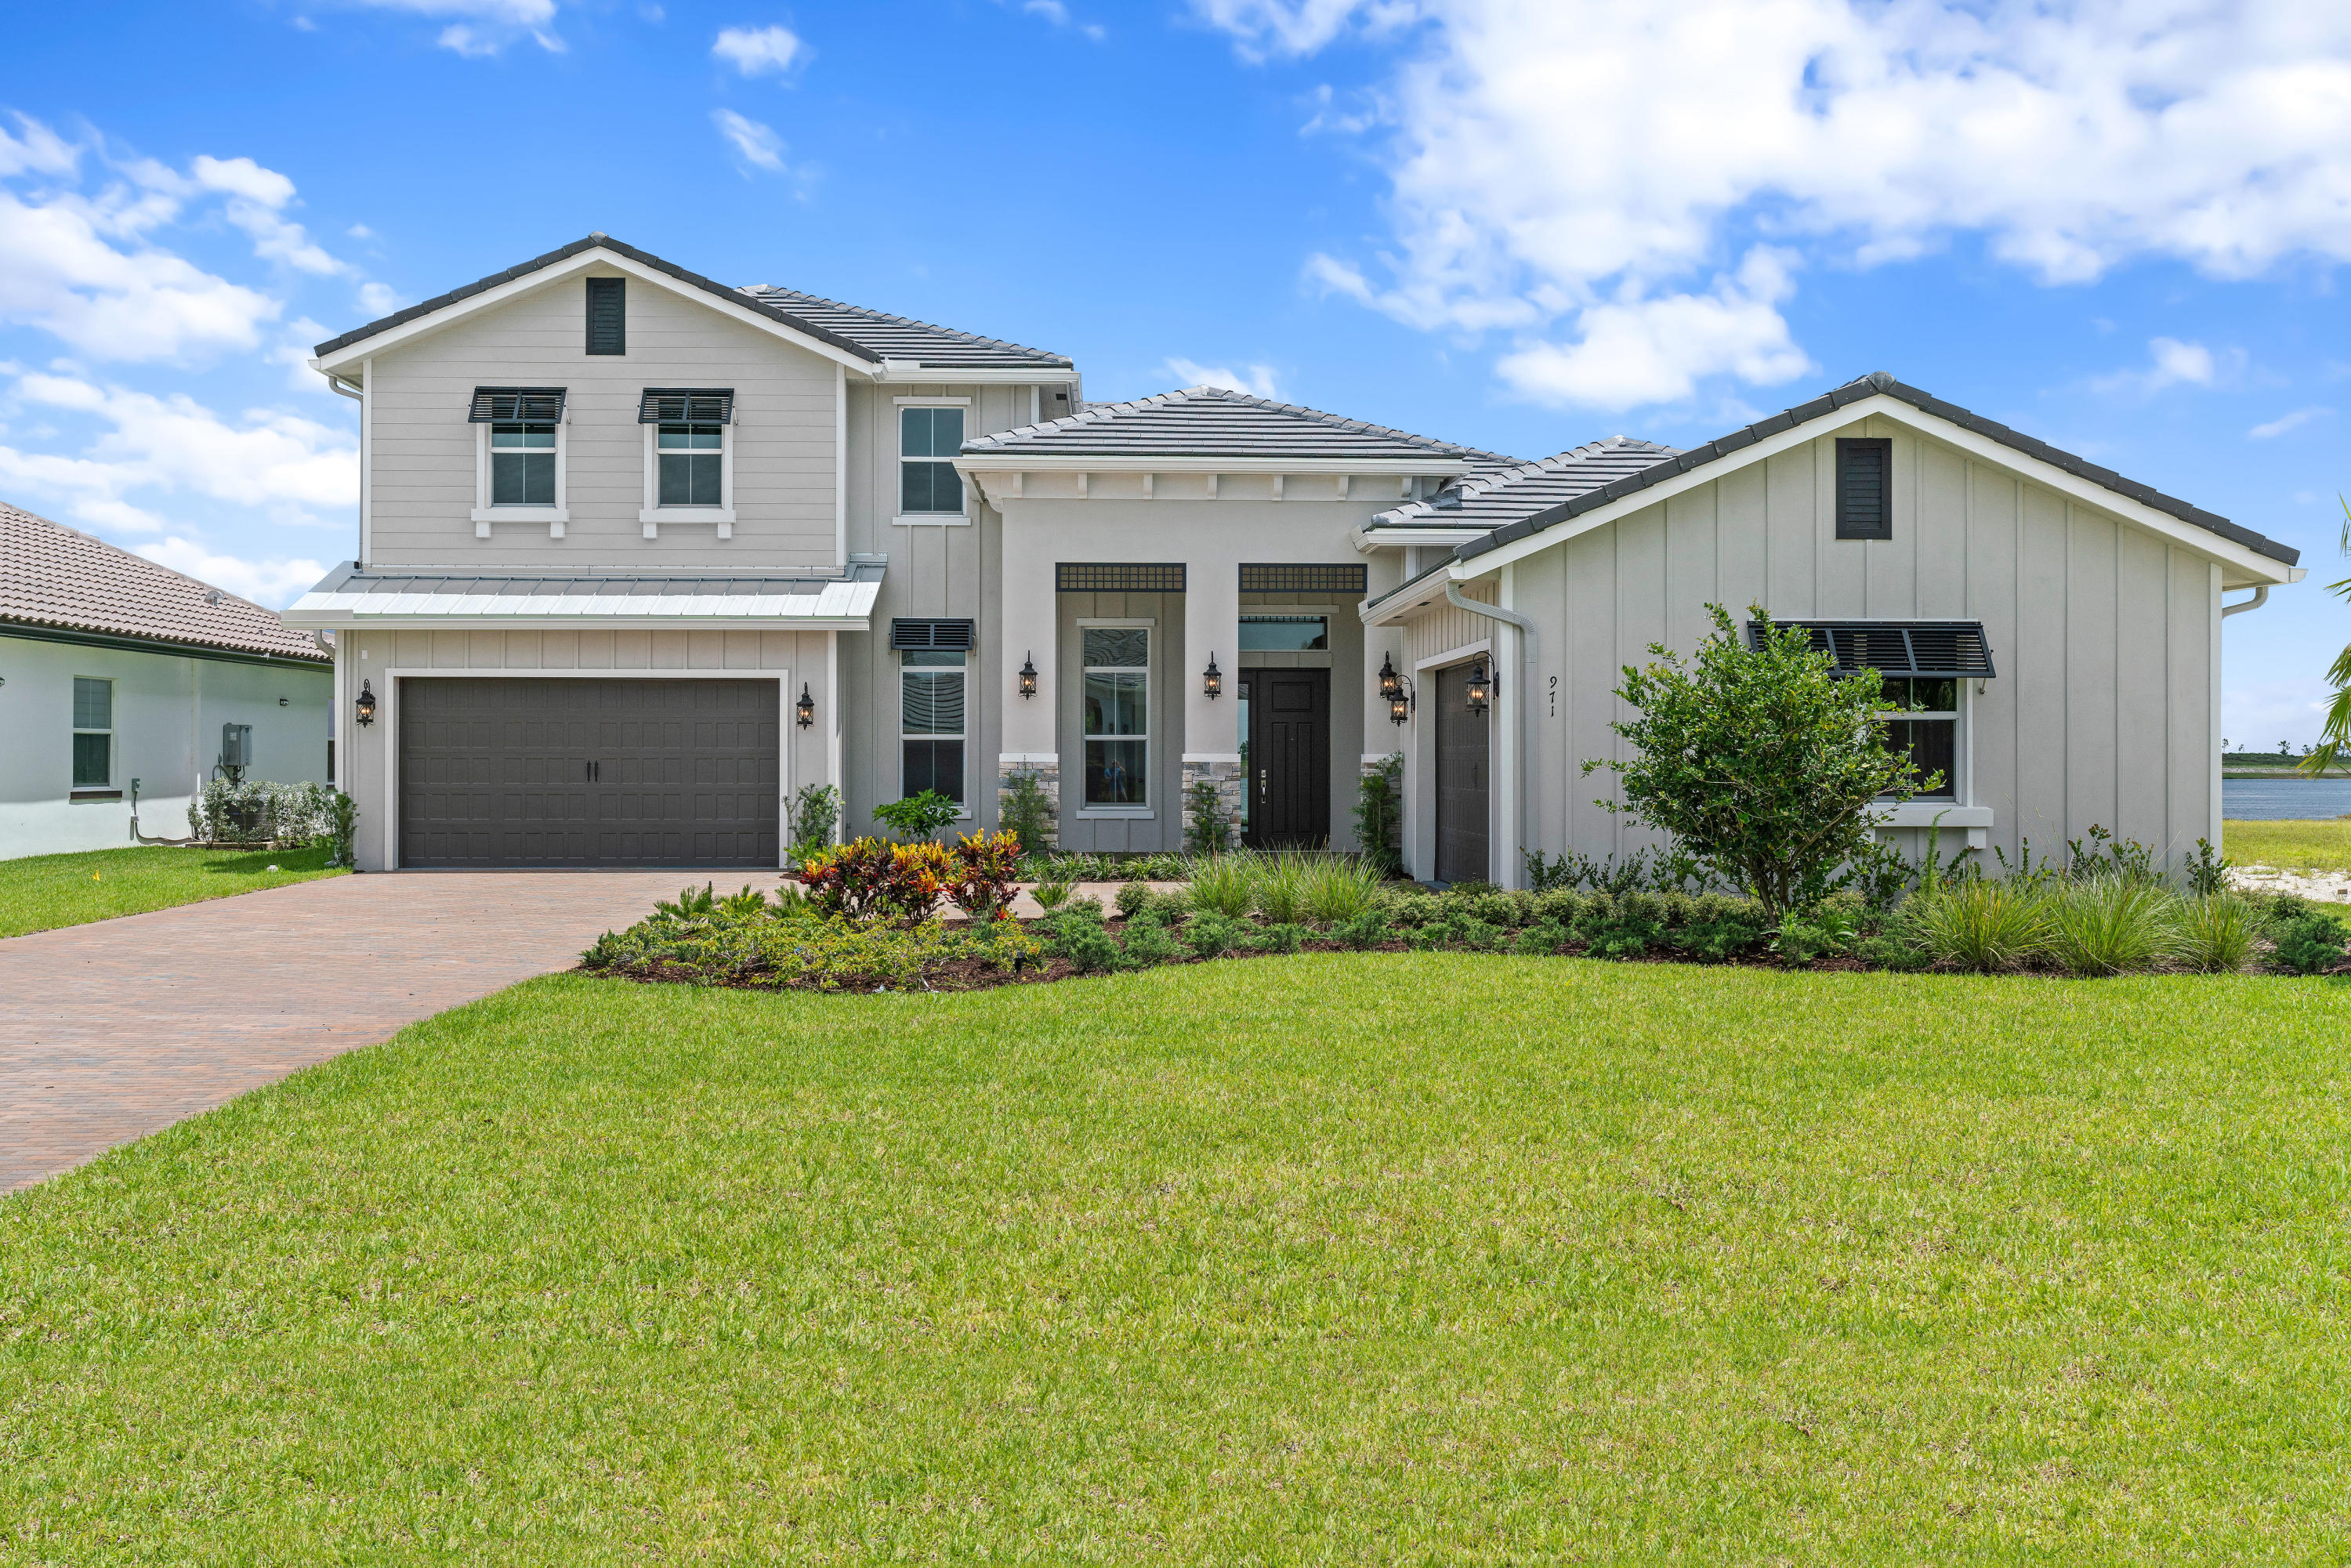 Details for 971 Hookline Circle, Loxahatchee, FL 33470